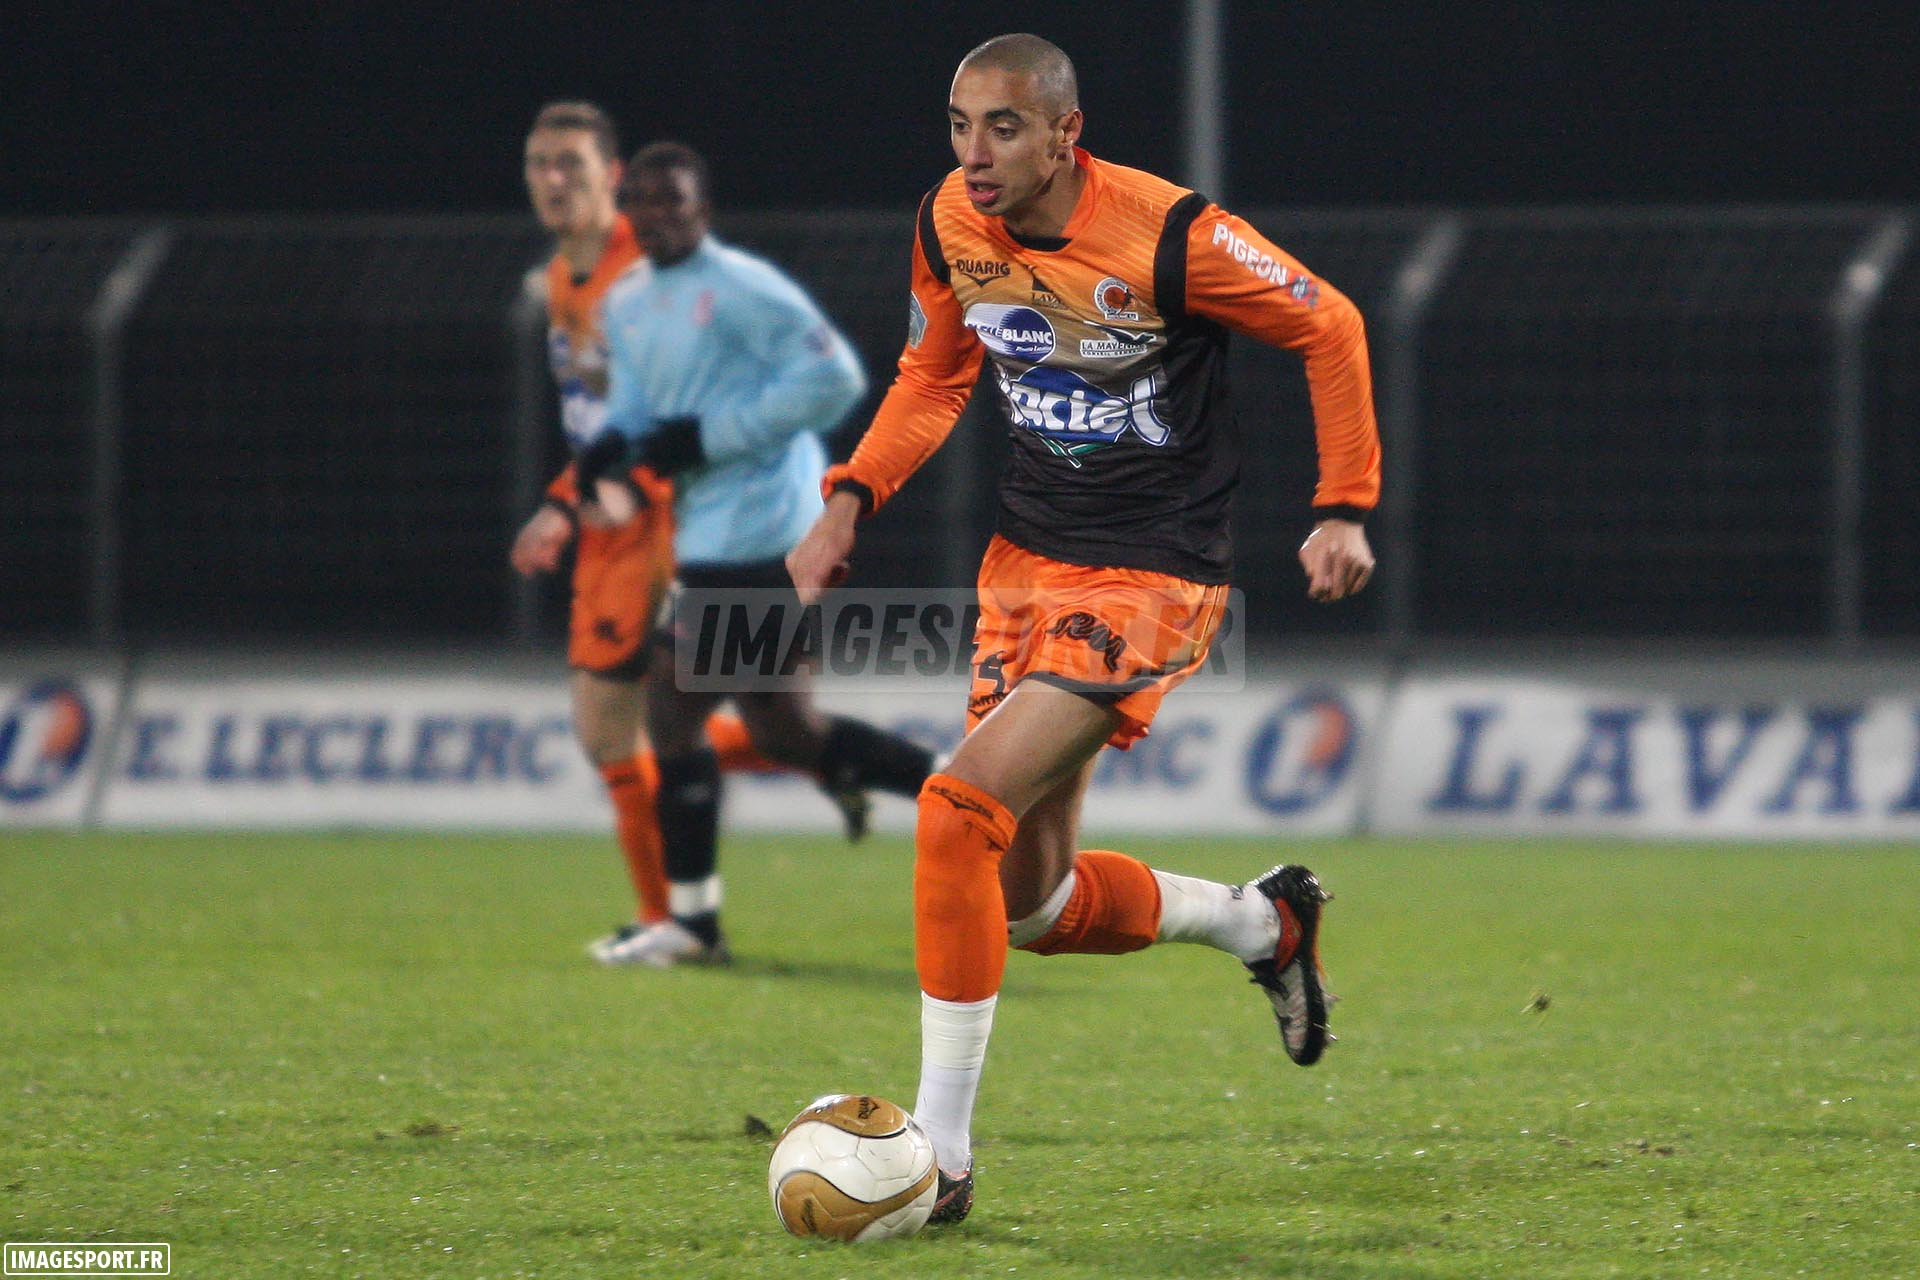 Stade Lavallois-AS Cannes (1-0)